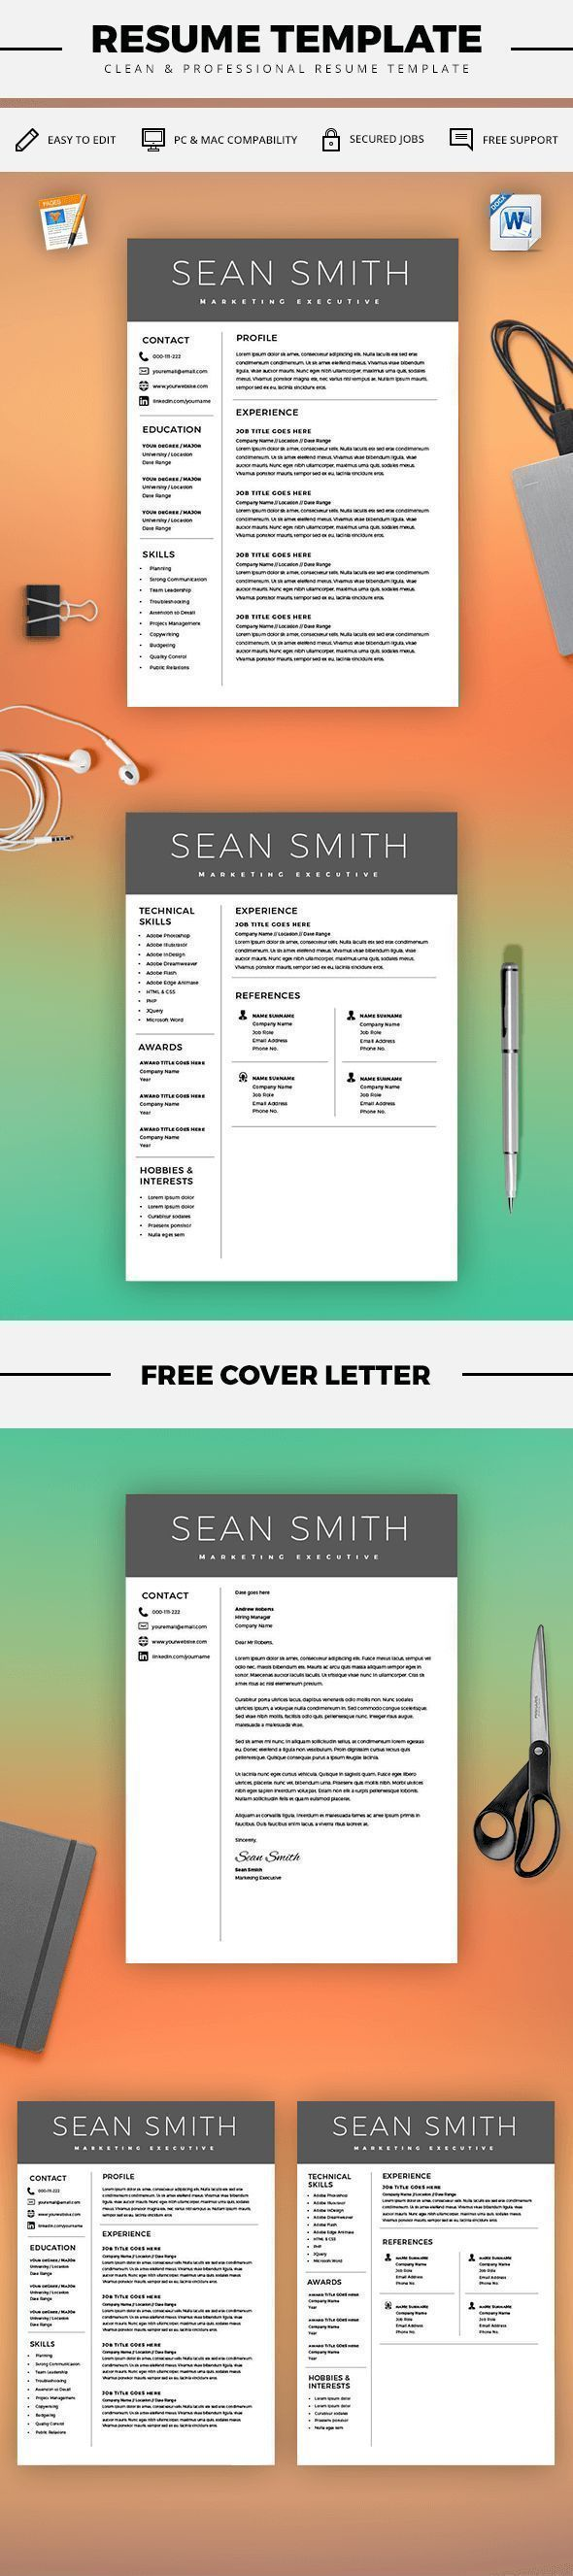 Curriculum Vitae Template  Professional Resume Template  Cover